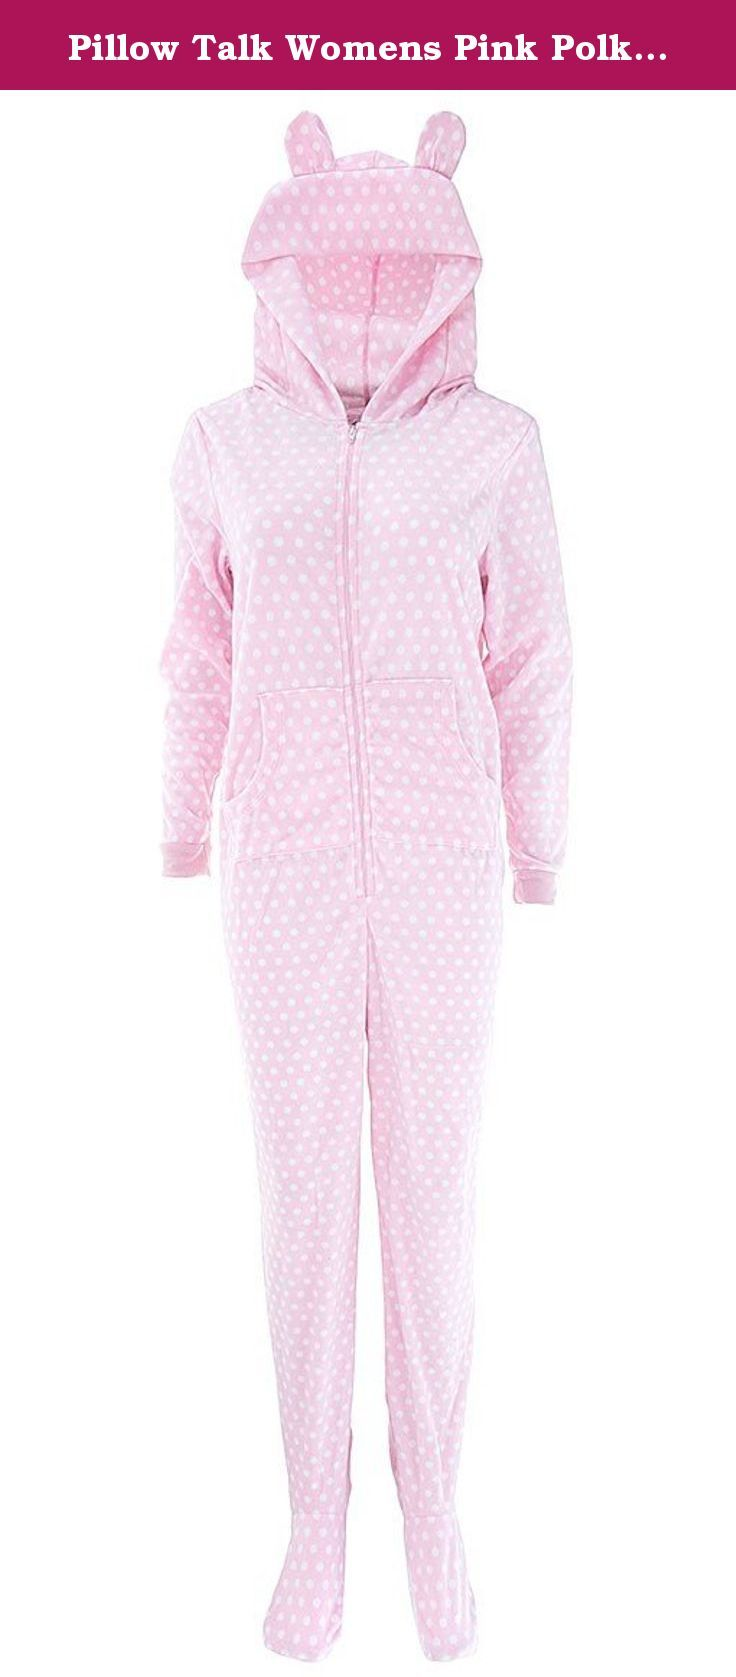 Pillow Talk Womens Pink Polka-Dot Hooded Footed Pajamas XL. These fleece, footed pajamas come complete with an attached hood. They feature a novelty print. The hood even has animal ears on the hood. The fabric is warm, micro polar fleece. The brand is Pillow Talk. They zip up the front. The soles of the feet have a non-skid finish.